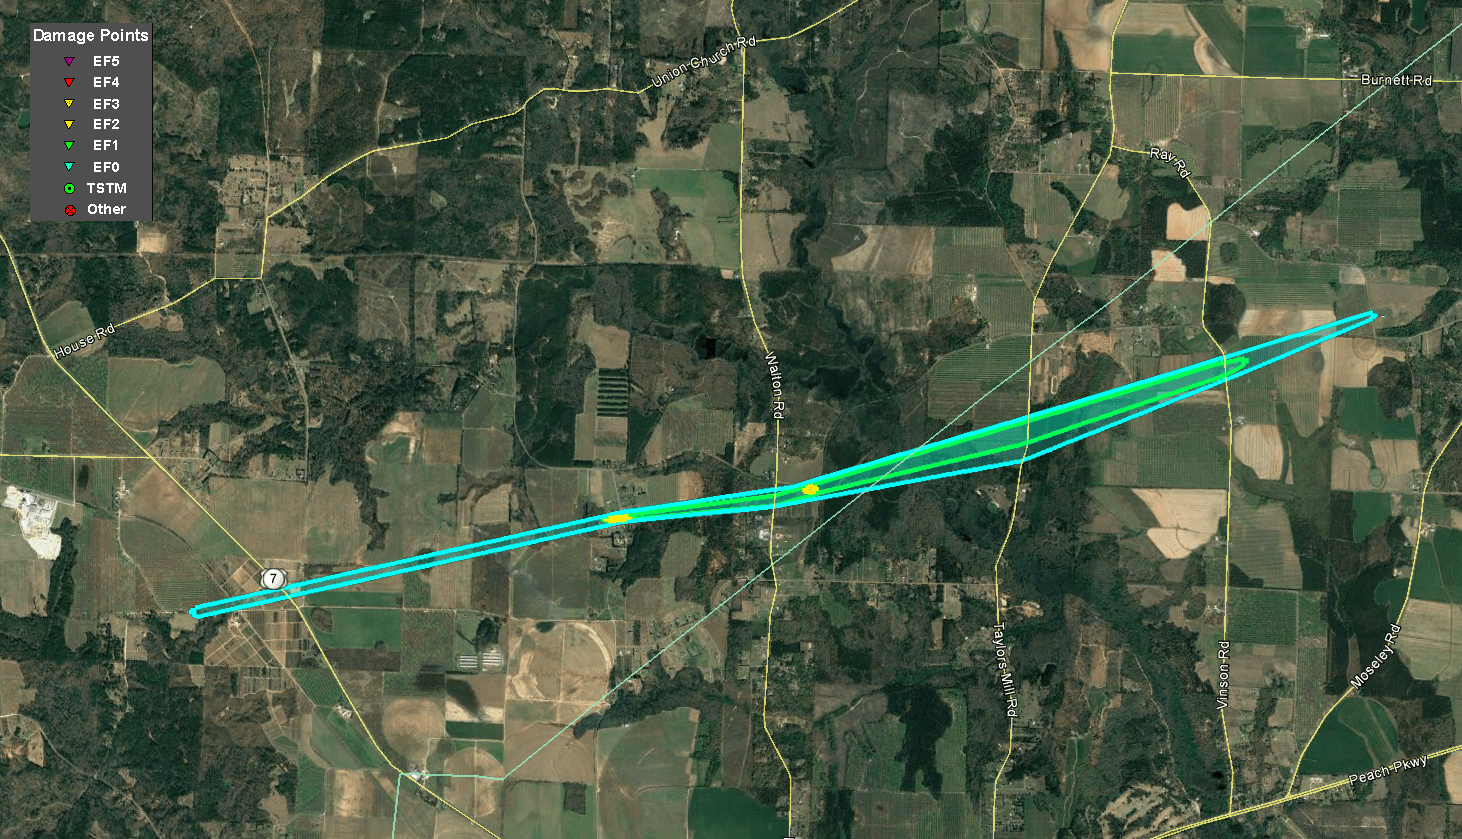 March 3, 2019 Tornadoes